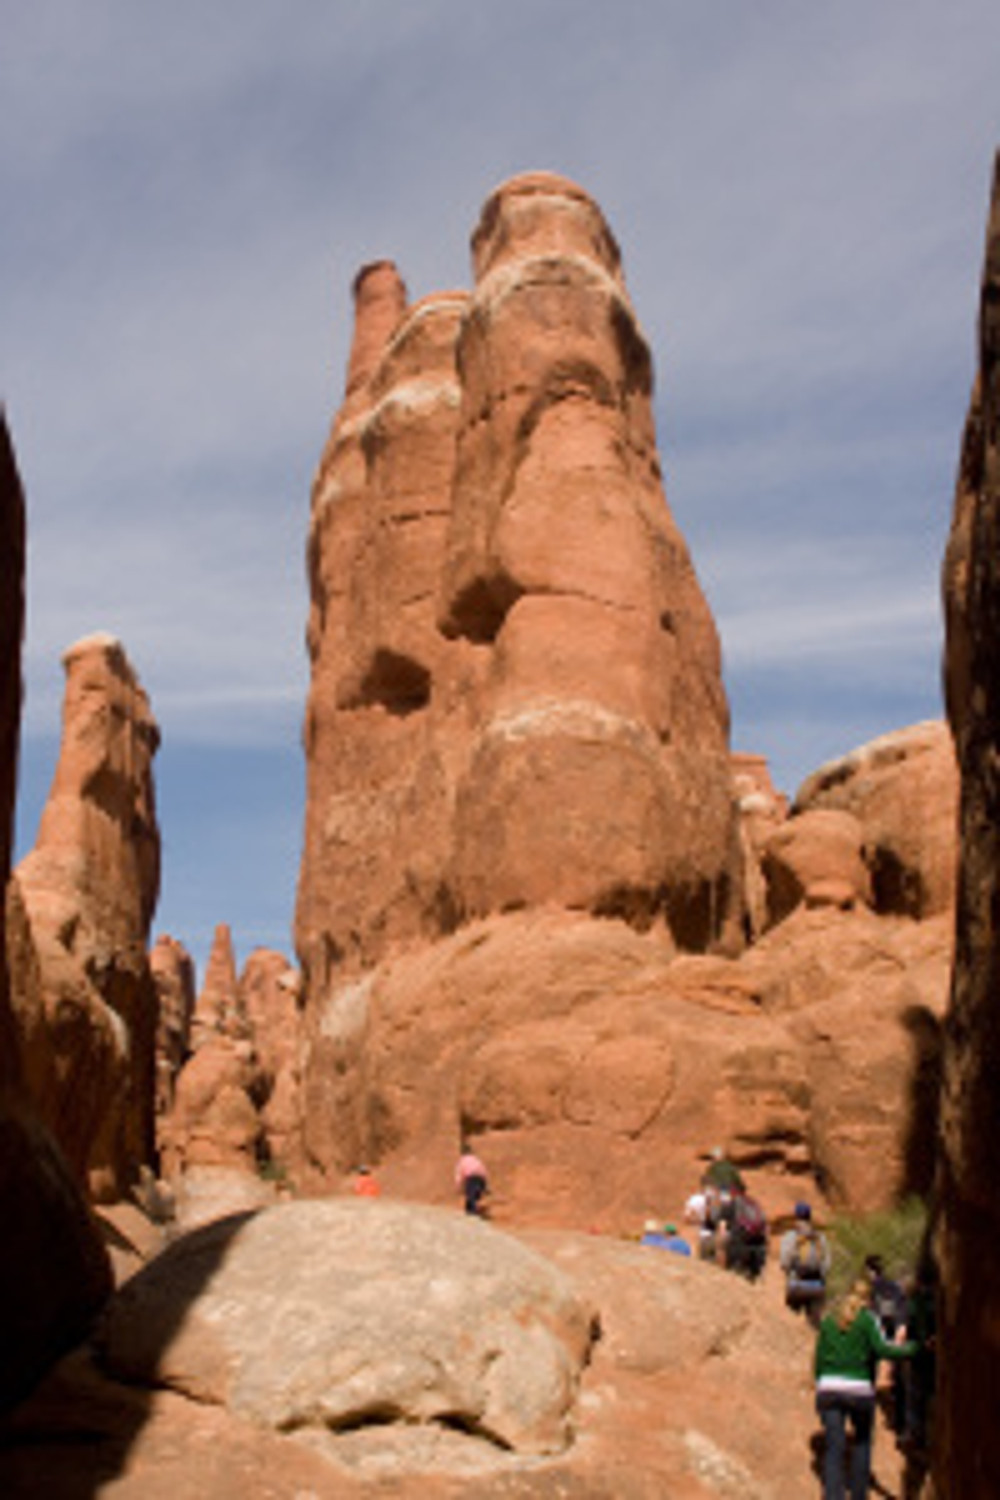 Ascending Sandstone Spires to the upper section of the Fiery Furnace